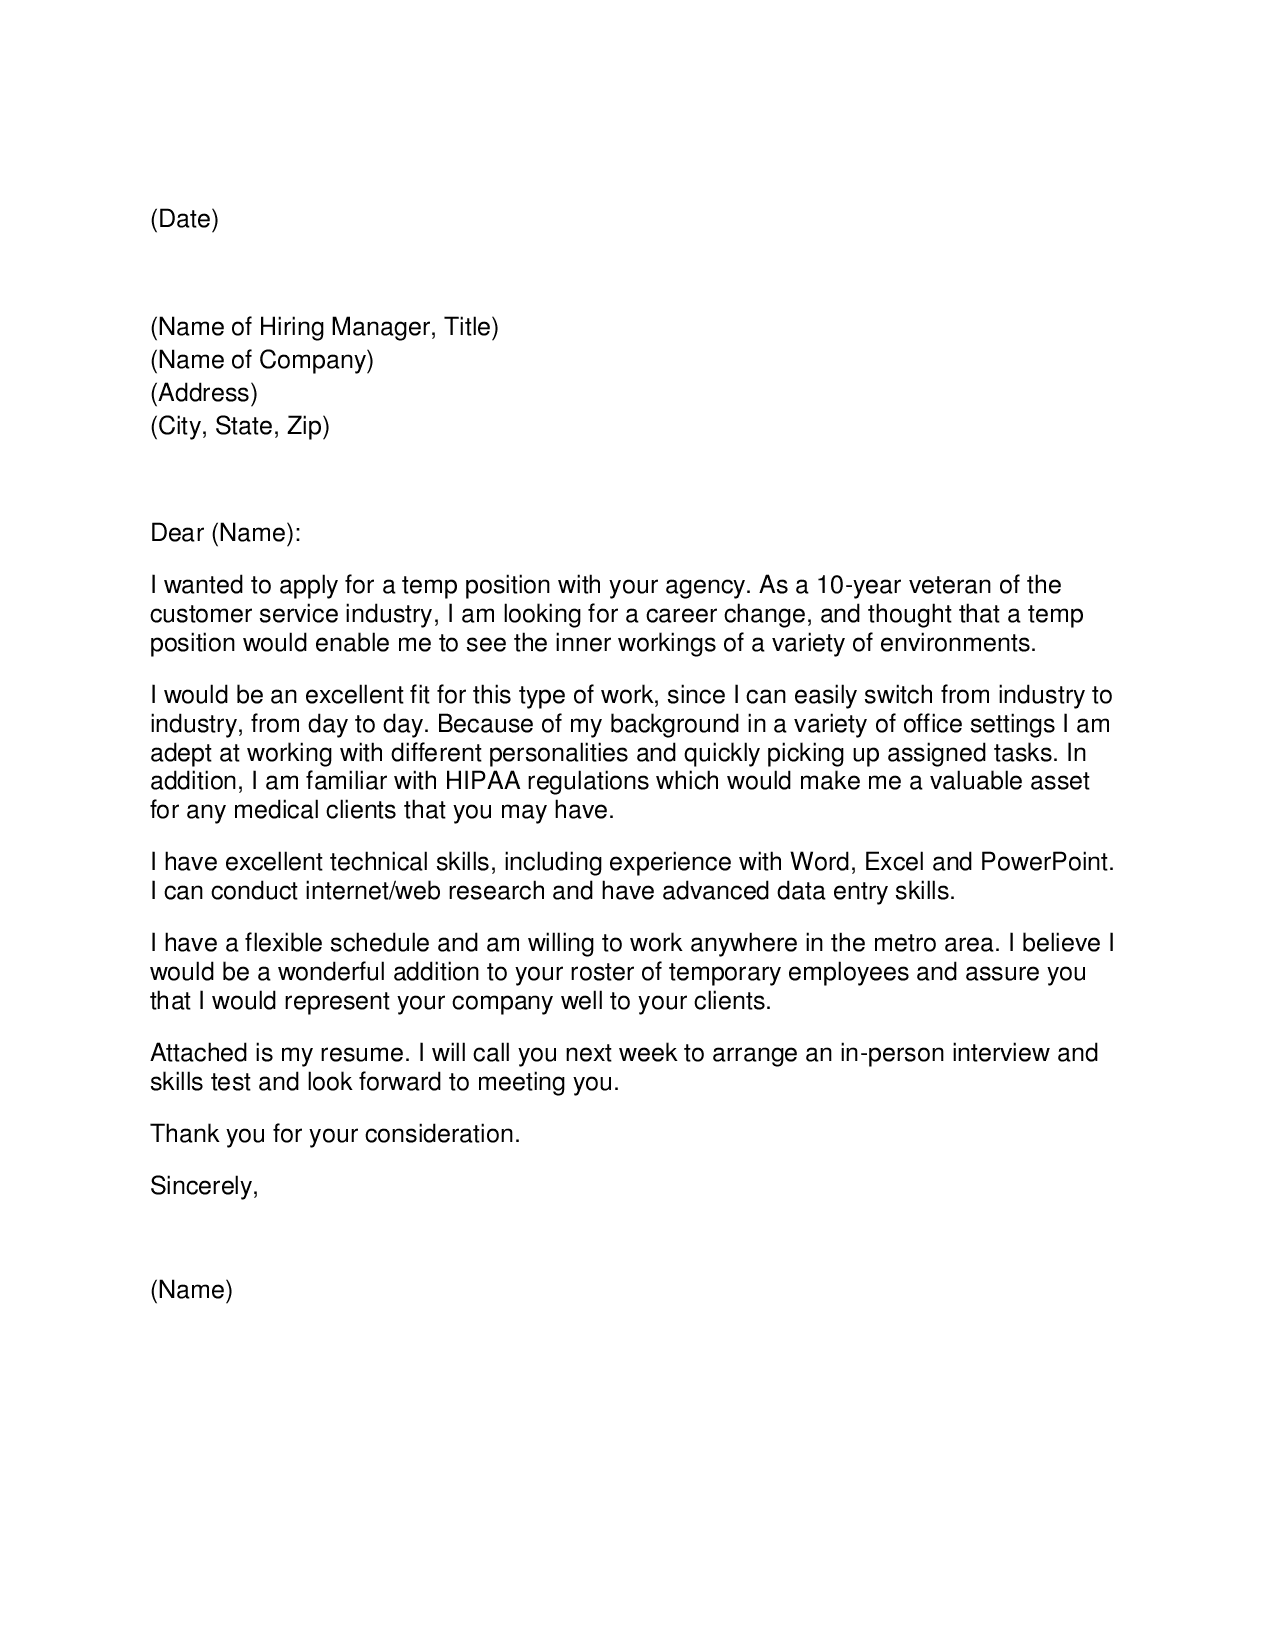 cover letter to temp agency employment - Cover Letter To Staffing Agency